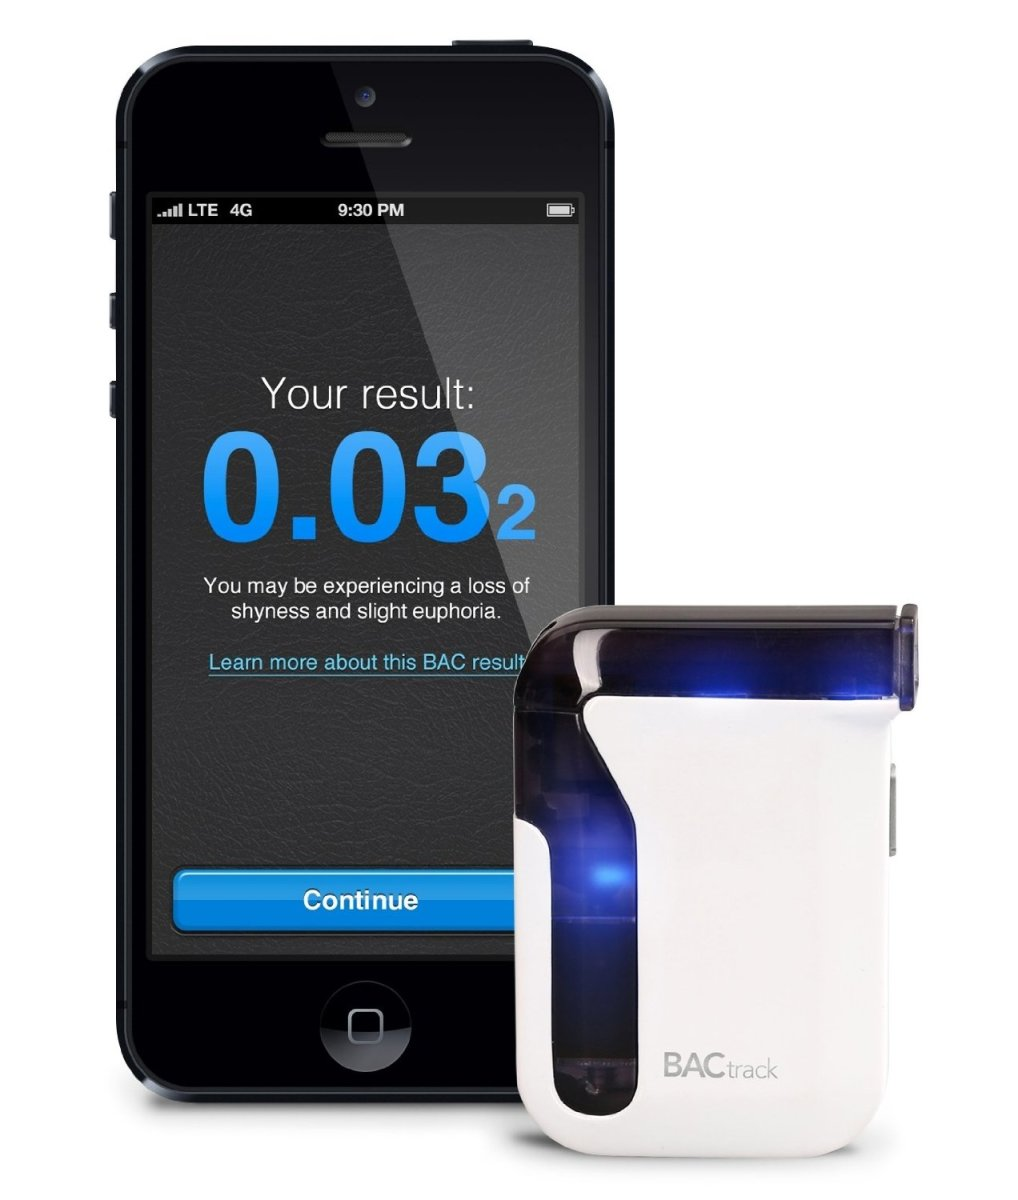 BACtrack BT-M5 Mobile Breathalyzer Smartphone Alcohol Tester for iPhone